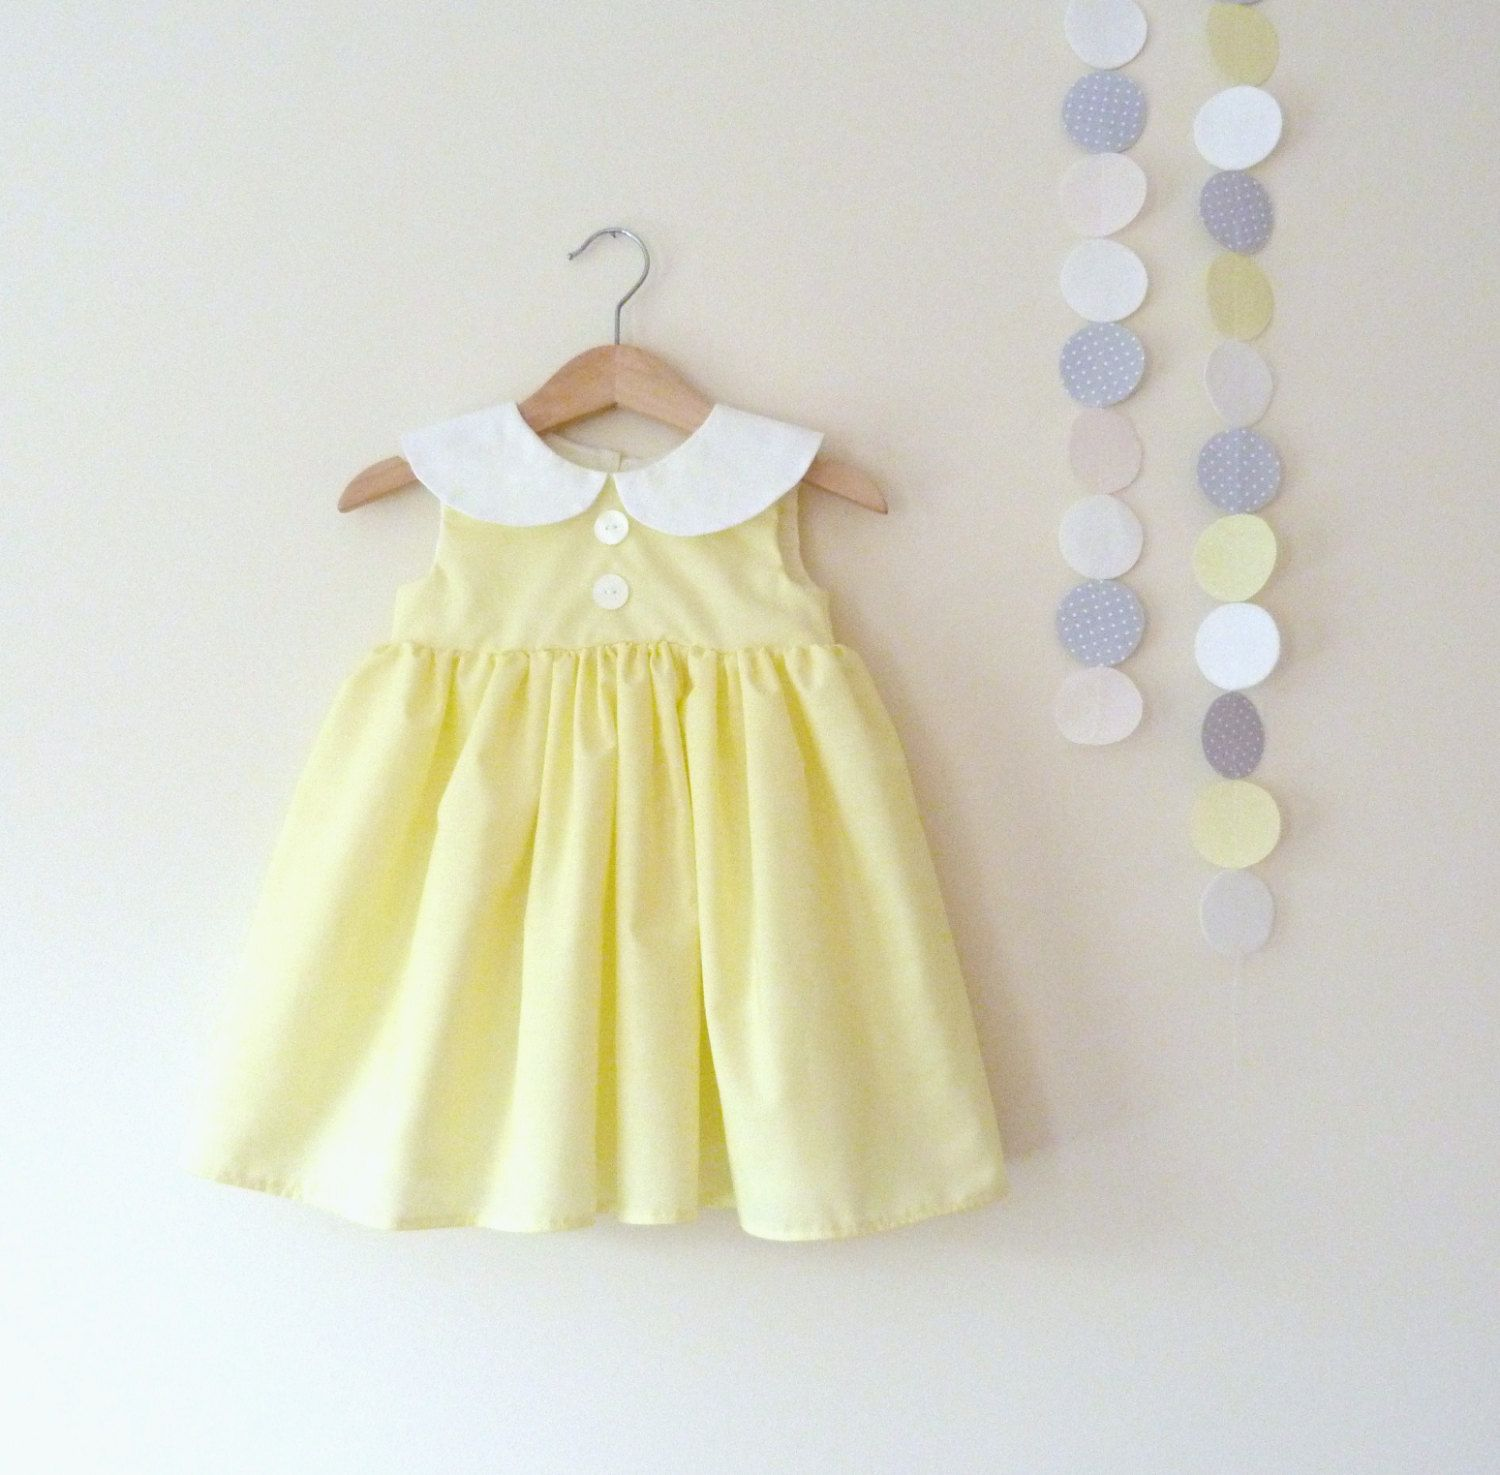 Girls Peter Pan Collar Dress In Lemon Yellow And by VesperClothier